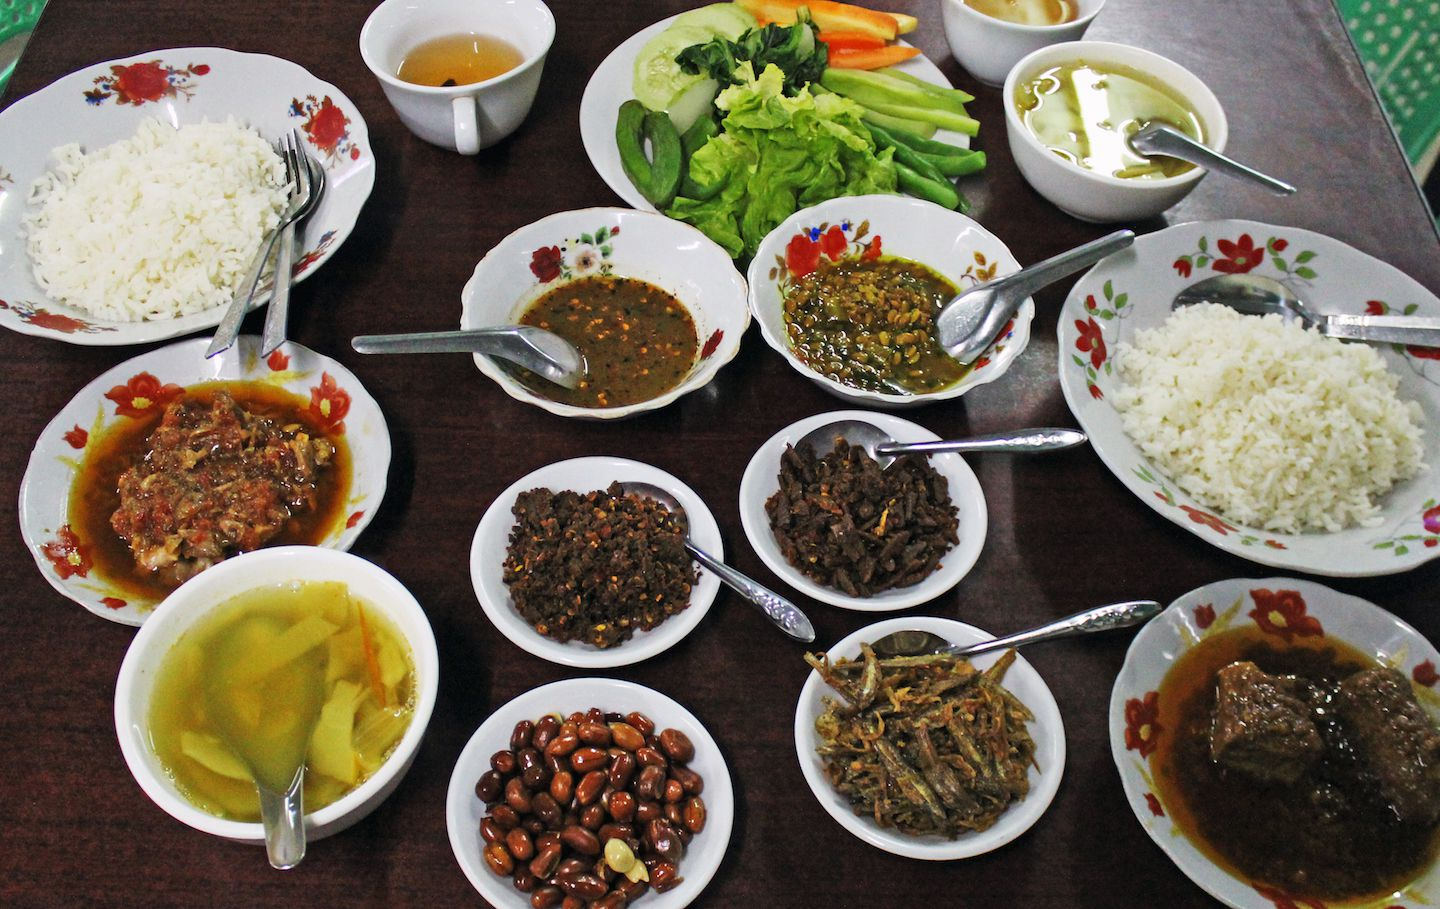 Cuisine Tours Myanmar Culinary Tours Myanmar Food Tours